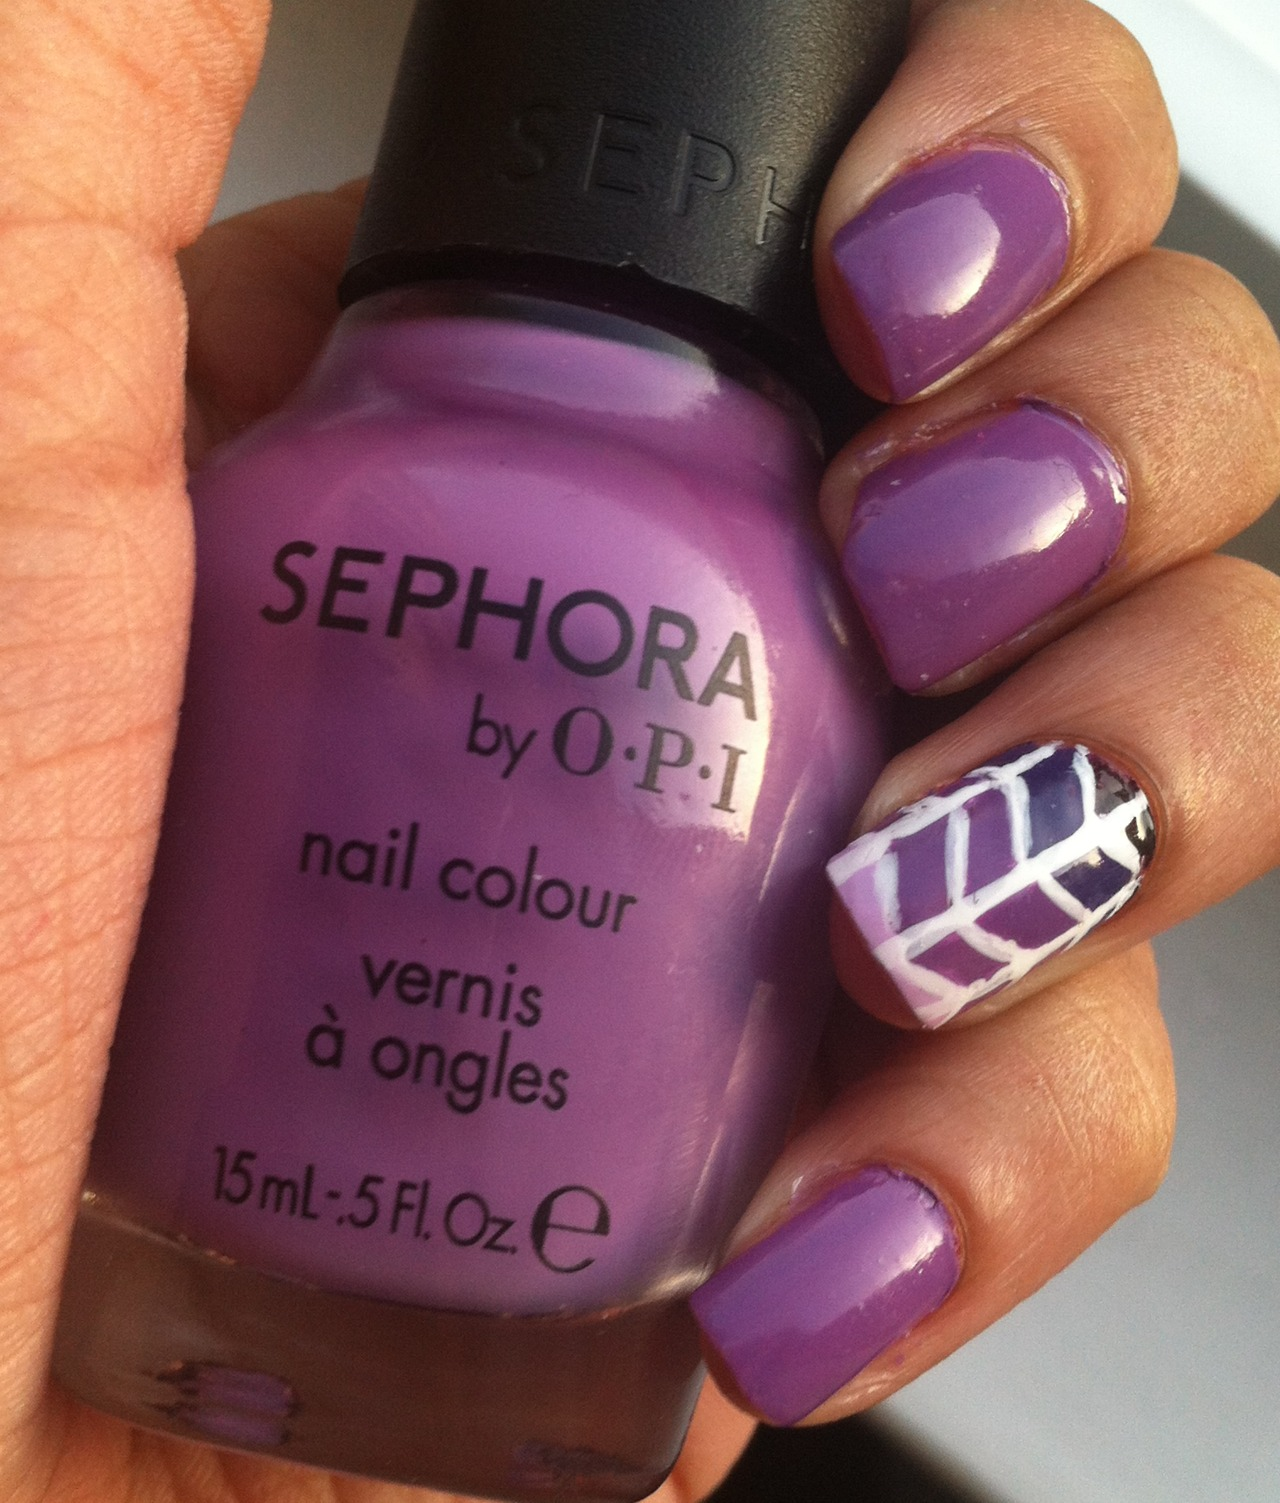 Purple and White Nail Art Design - Using OPI Sephora Polish